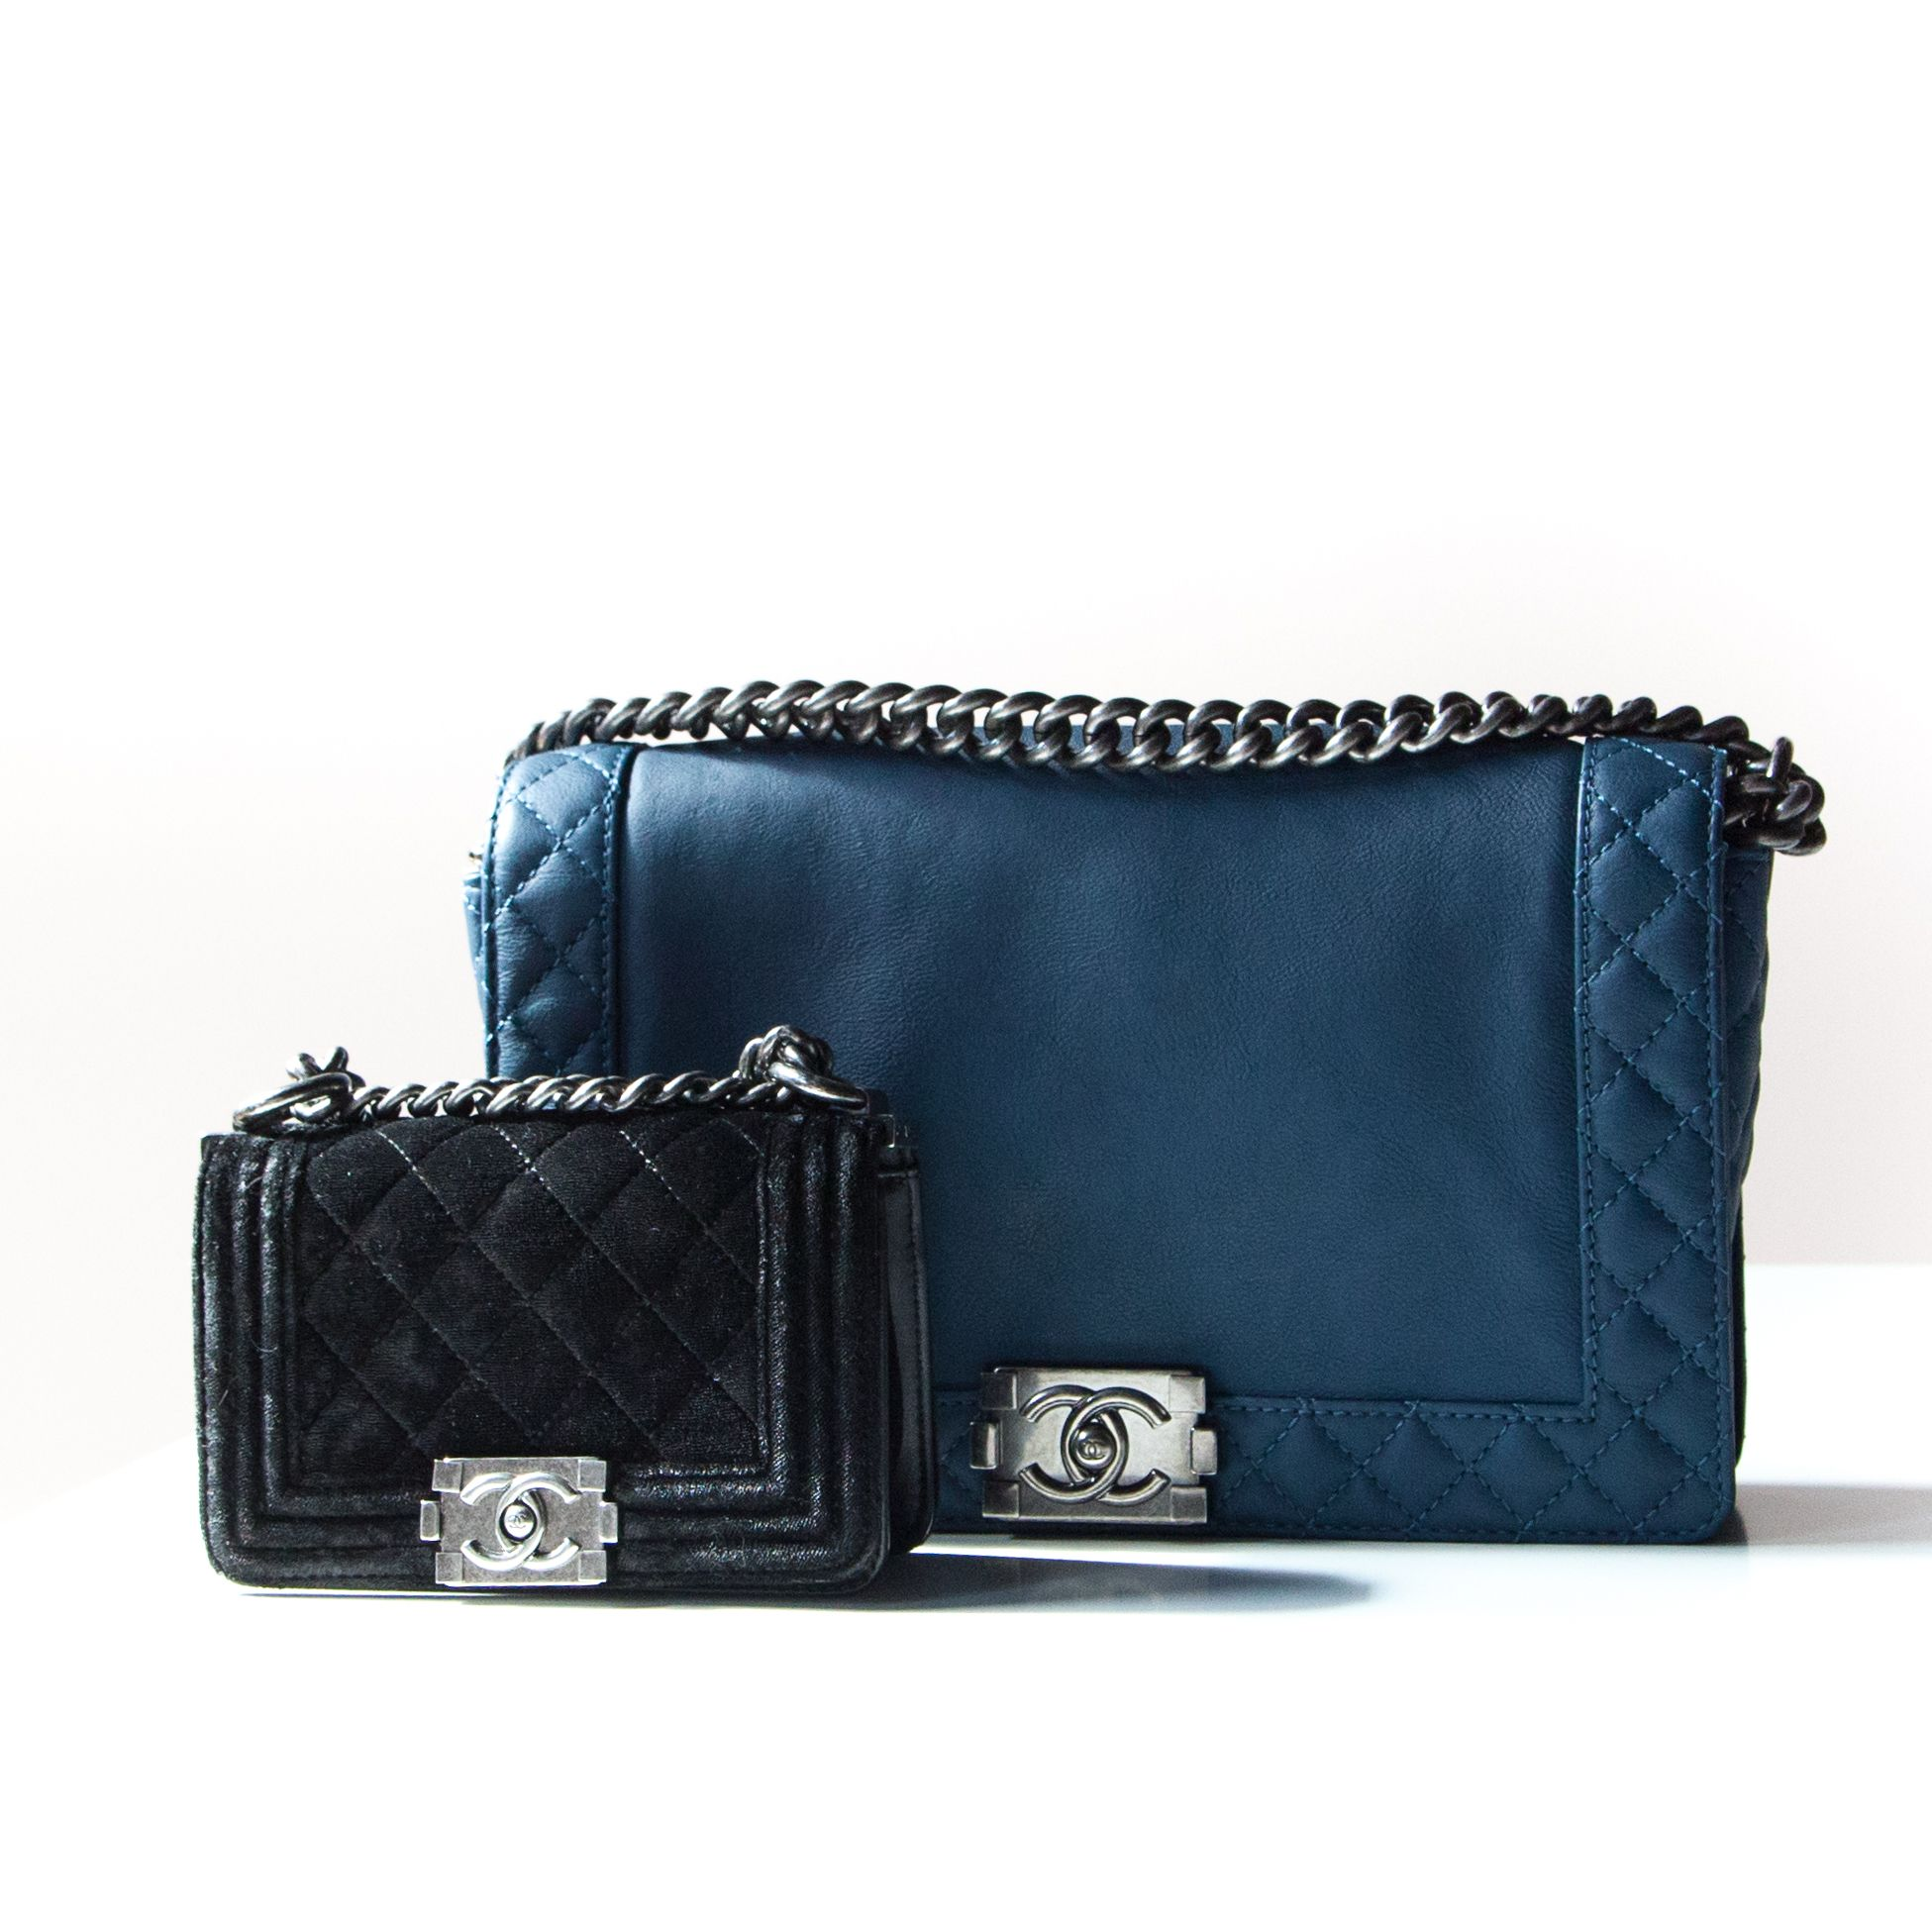 Chanel Boy Bags These Two Pre Owned Bags Are At Great Prices At Lovethatbag Ca Chanel Handbags Chanel Bag